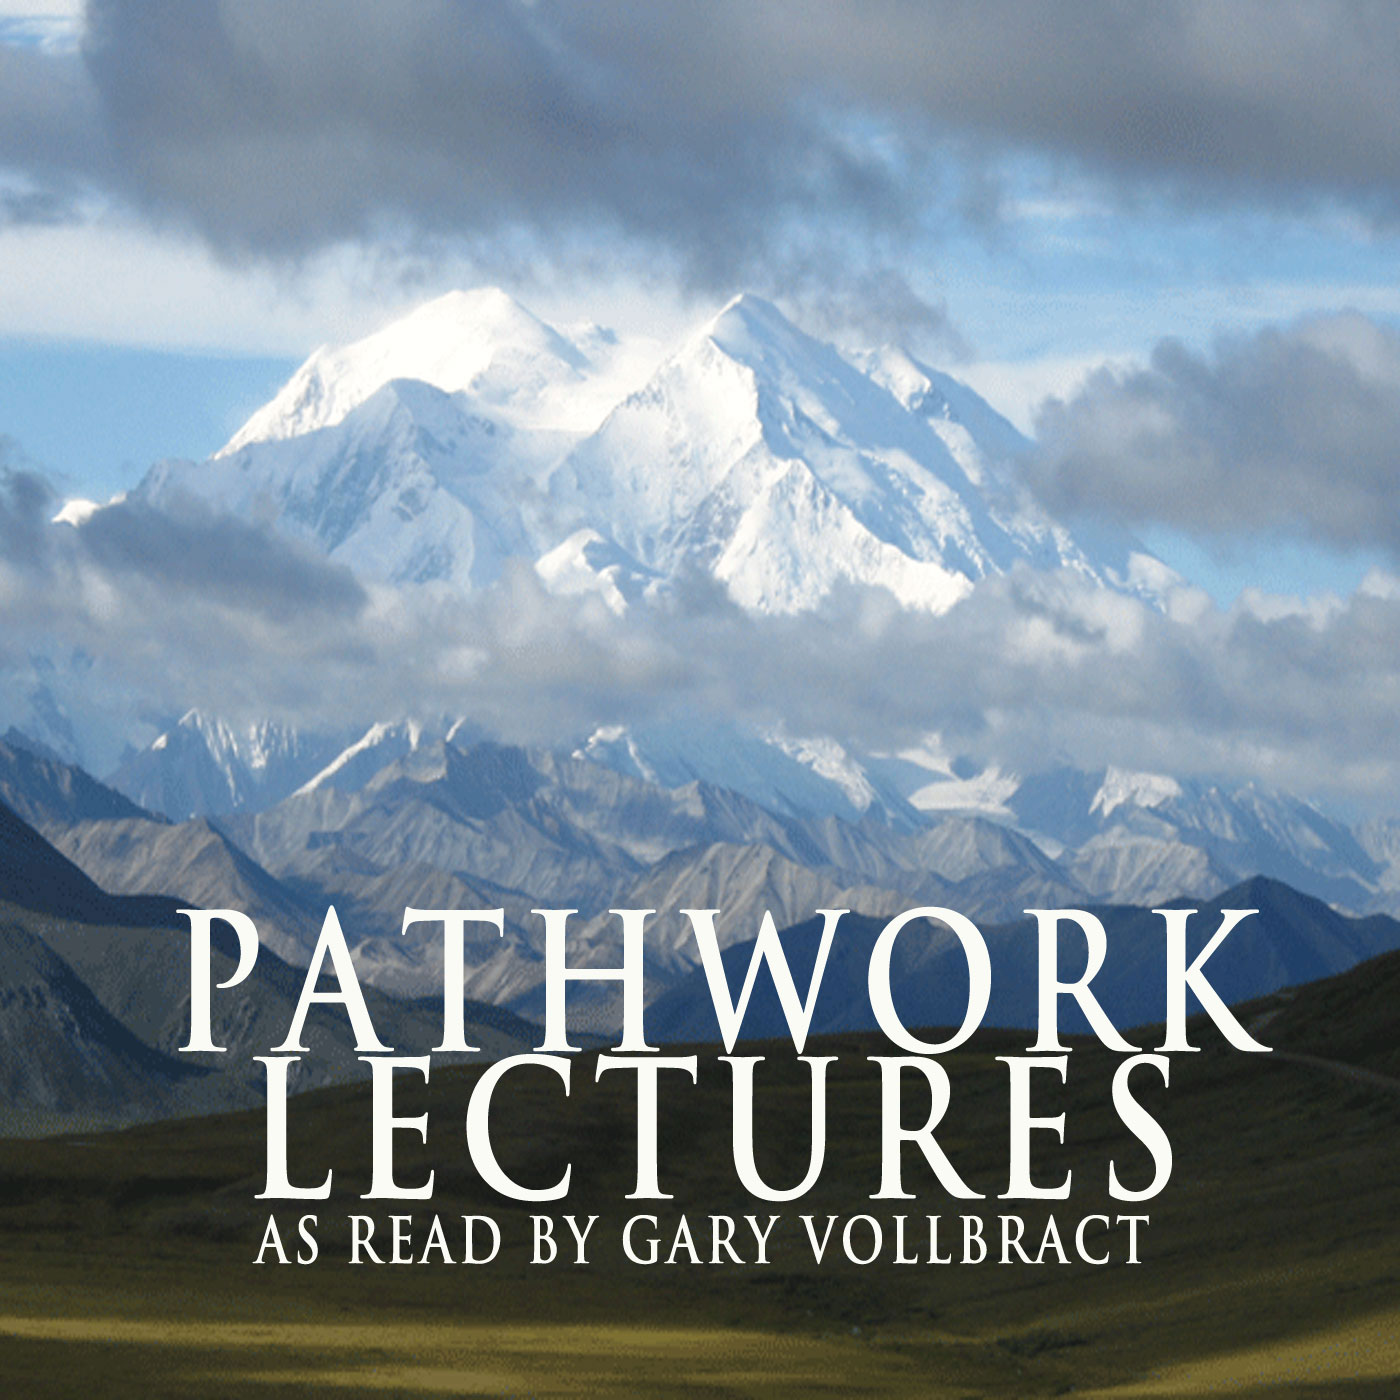 Pathwork Lectures by Eva Pierrakos (as read by Gary Vollbracht)